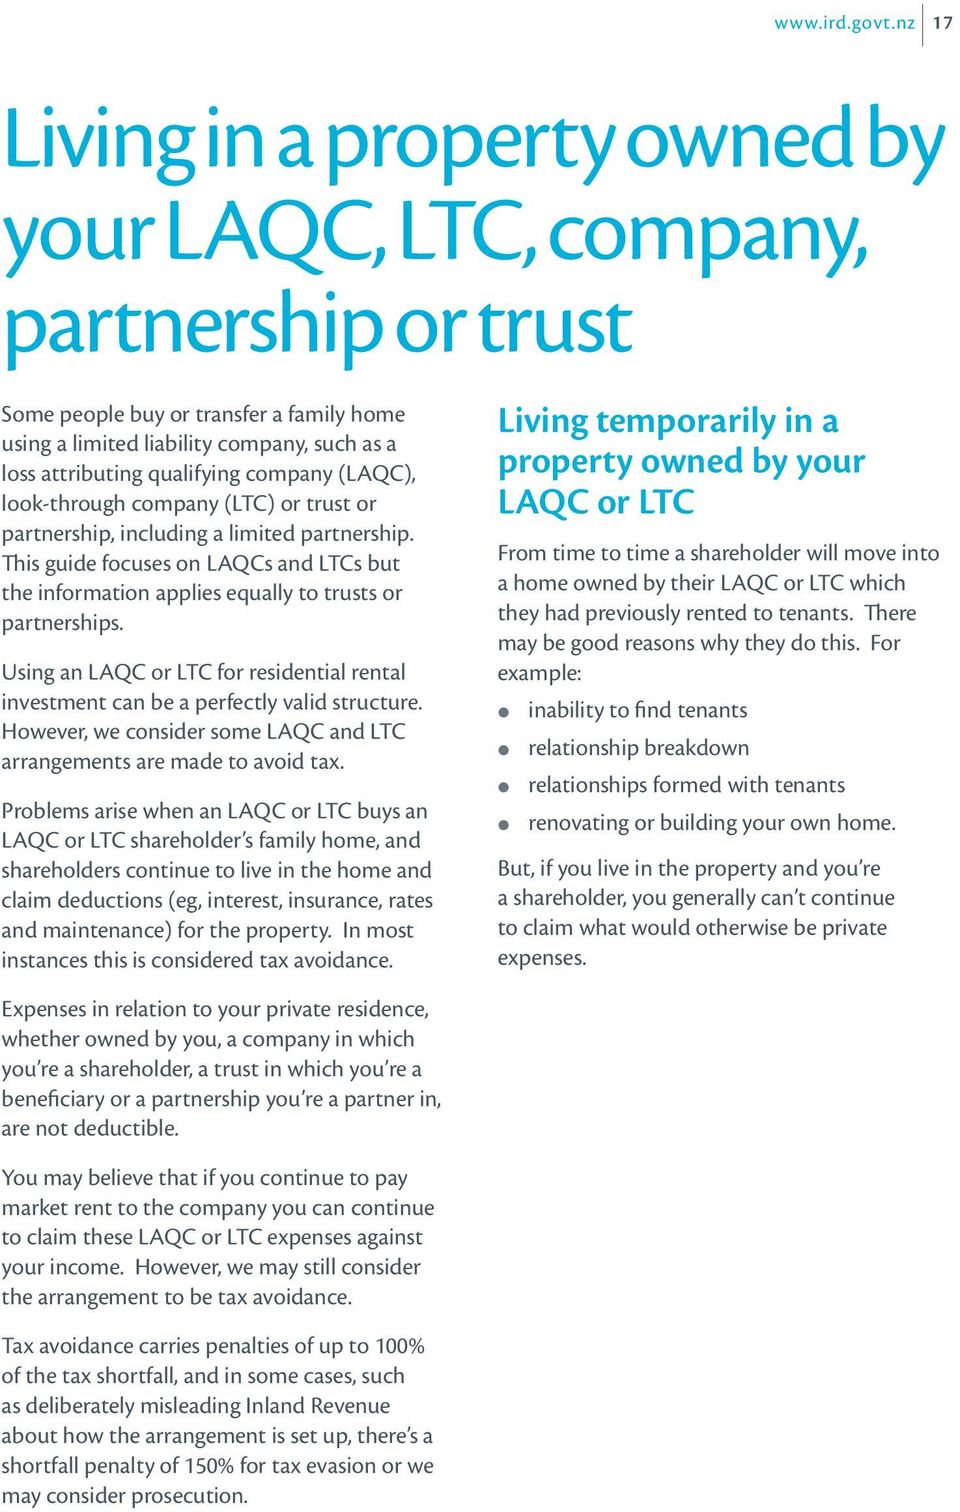 company (LAQC), look-through company (LTC) or trust or partnership, including a limited partnership. This guide focuses on LAQCs and LTCs but the information applies equally to trusts or partnerships.